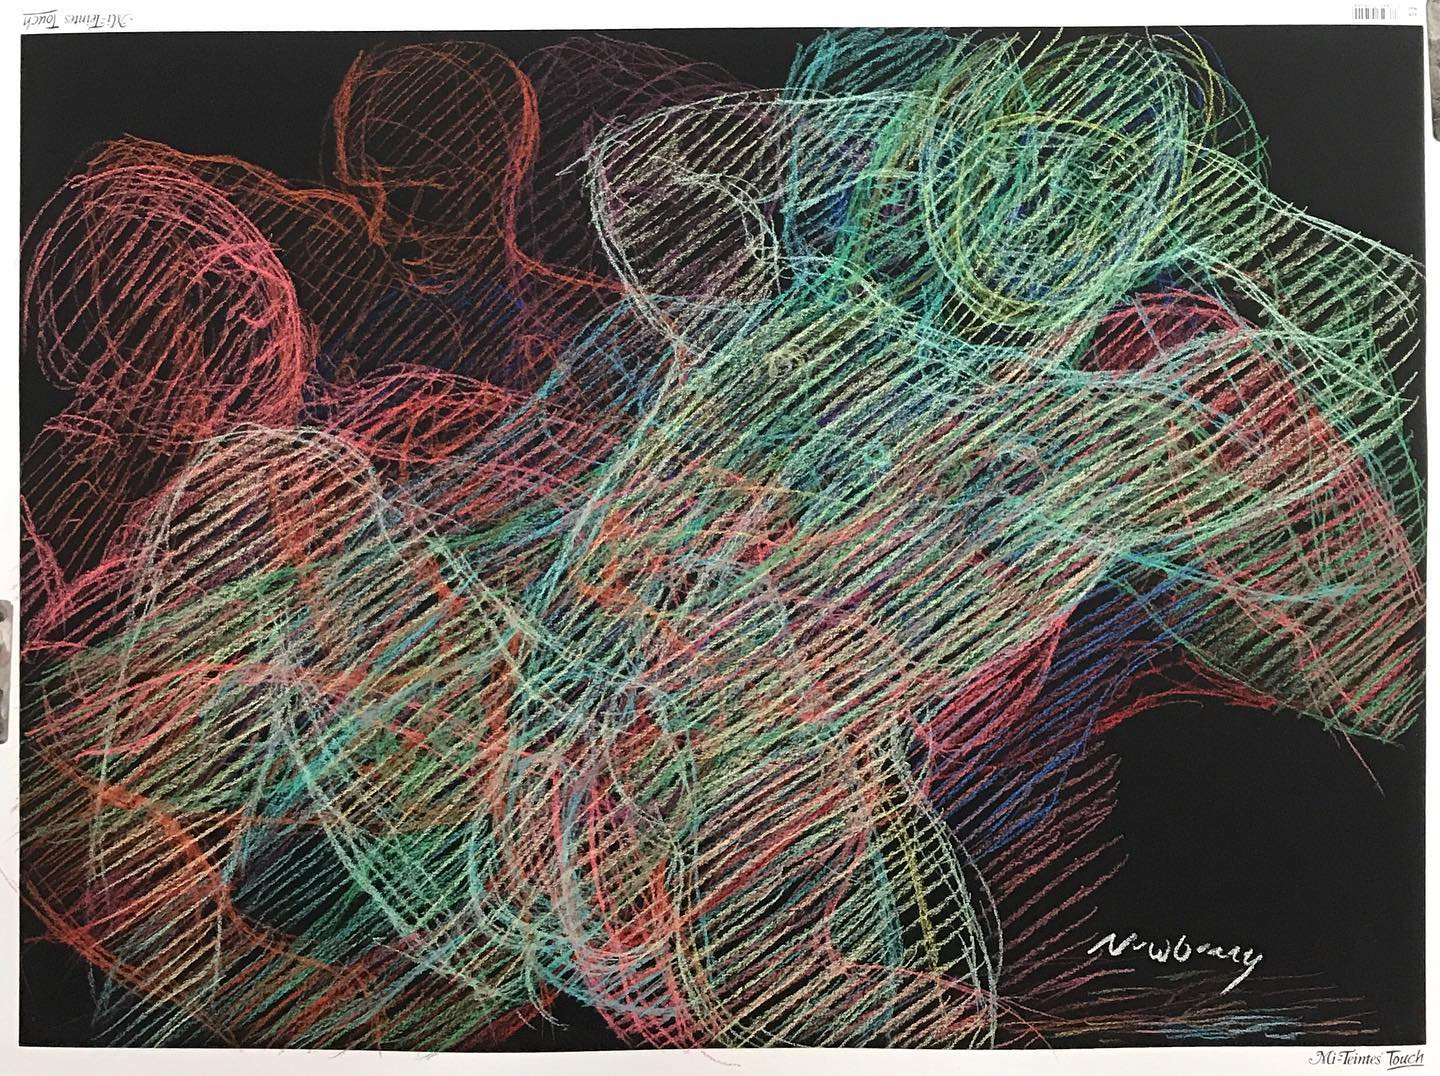 Newberry, Nude Reclining, pastel on black paper, 20x30""